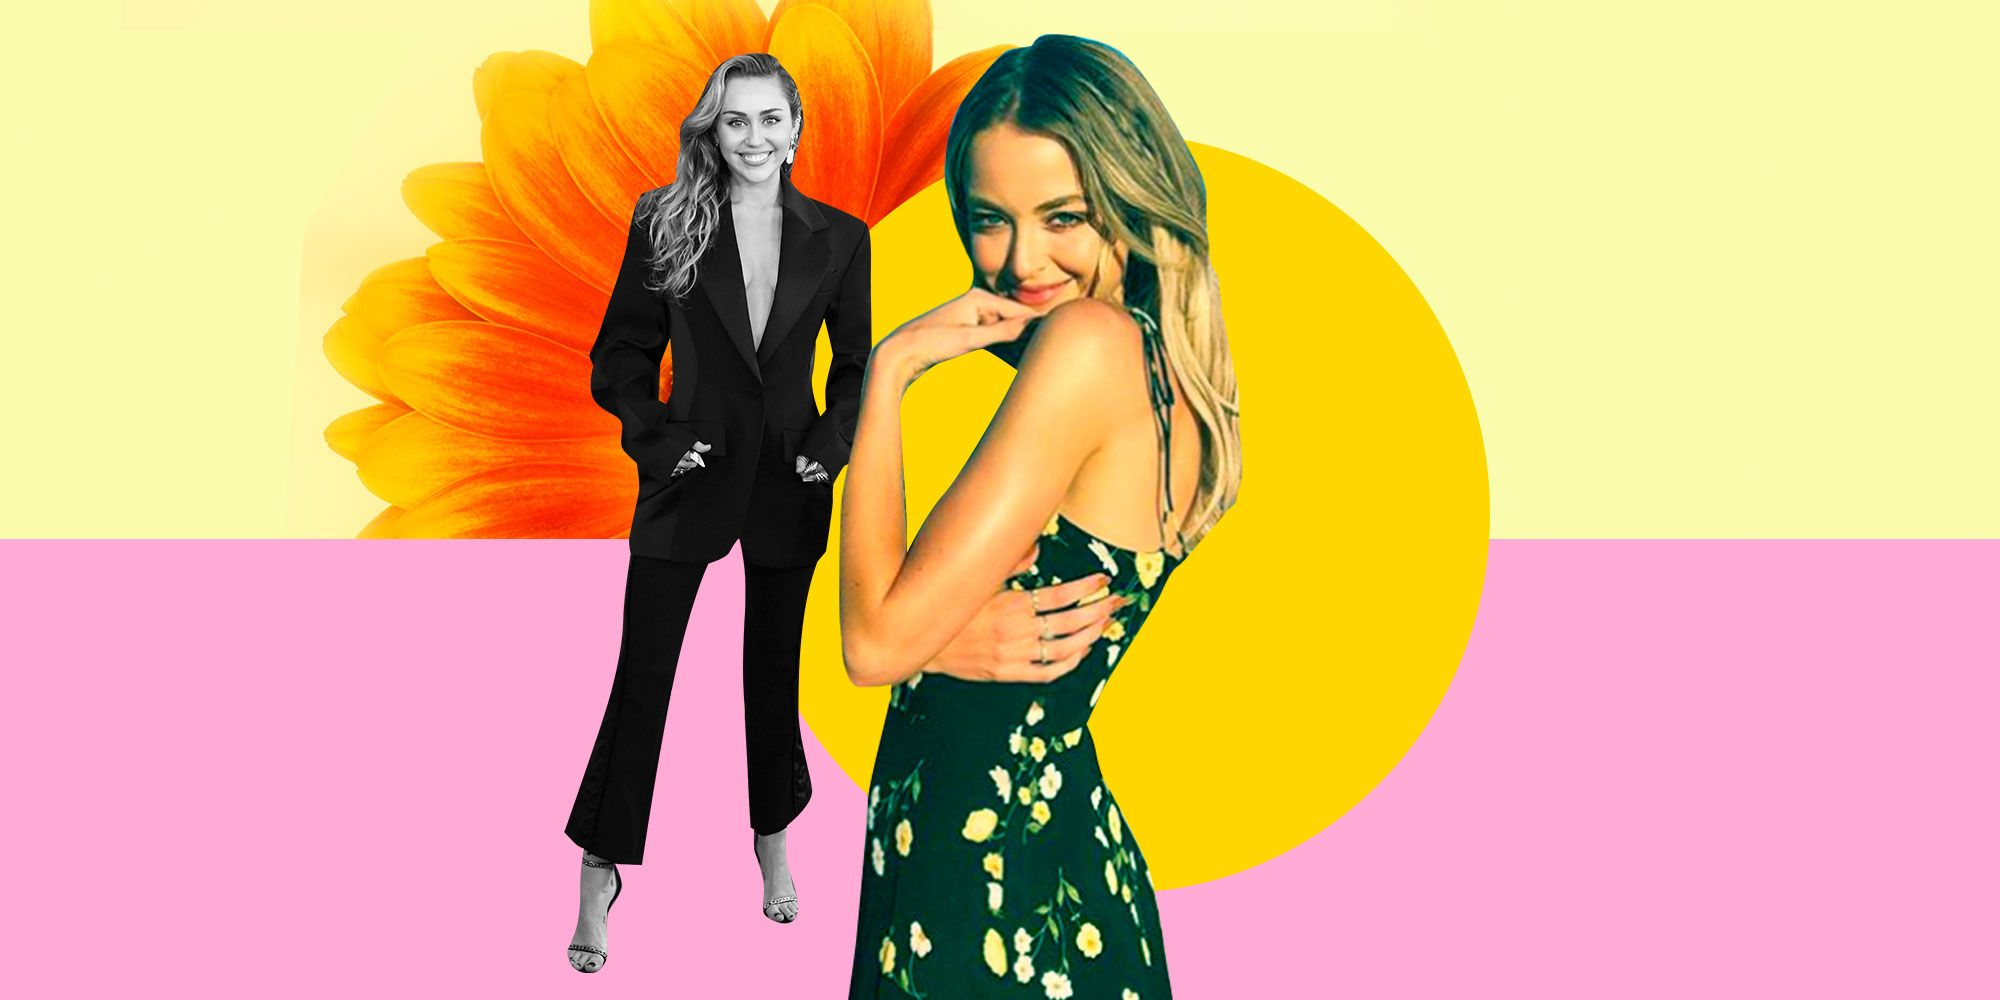 A Timeline Of Miley Cyrus And Kaitlynn Carter's Relationship For Everyone Who Is Deeply Confused